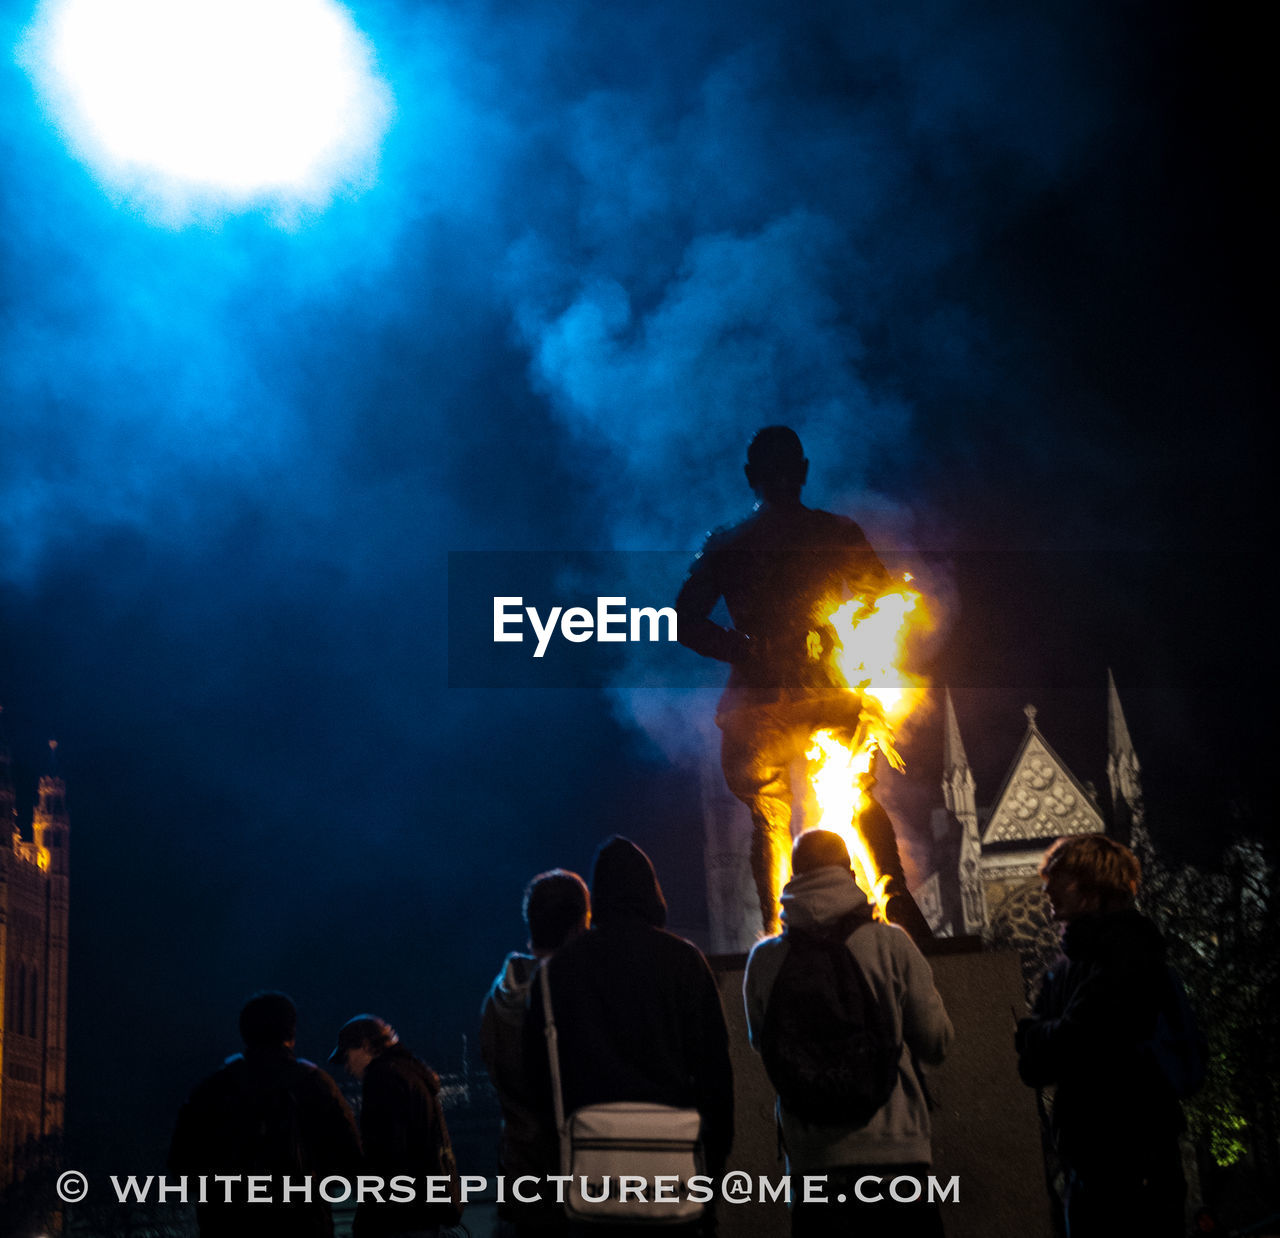 architecture, built structure, real people, sky, building exterior, night, outdoors, men, city, illuminated, women, protestor, people